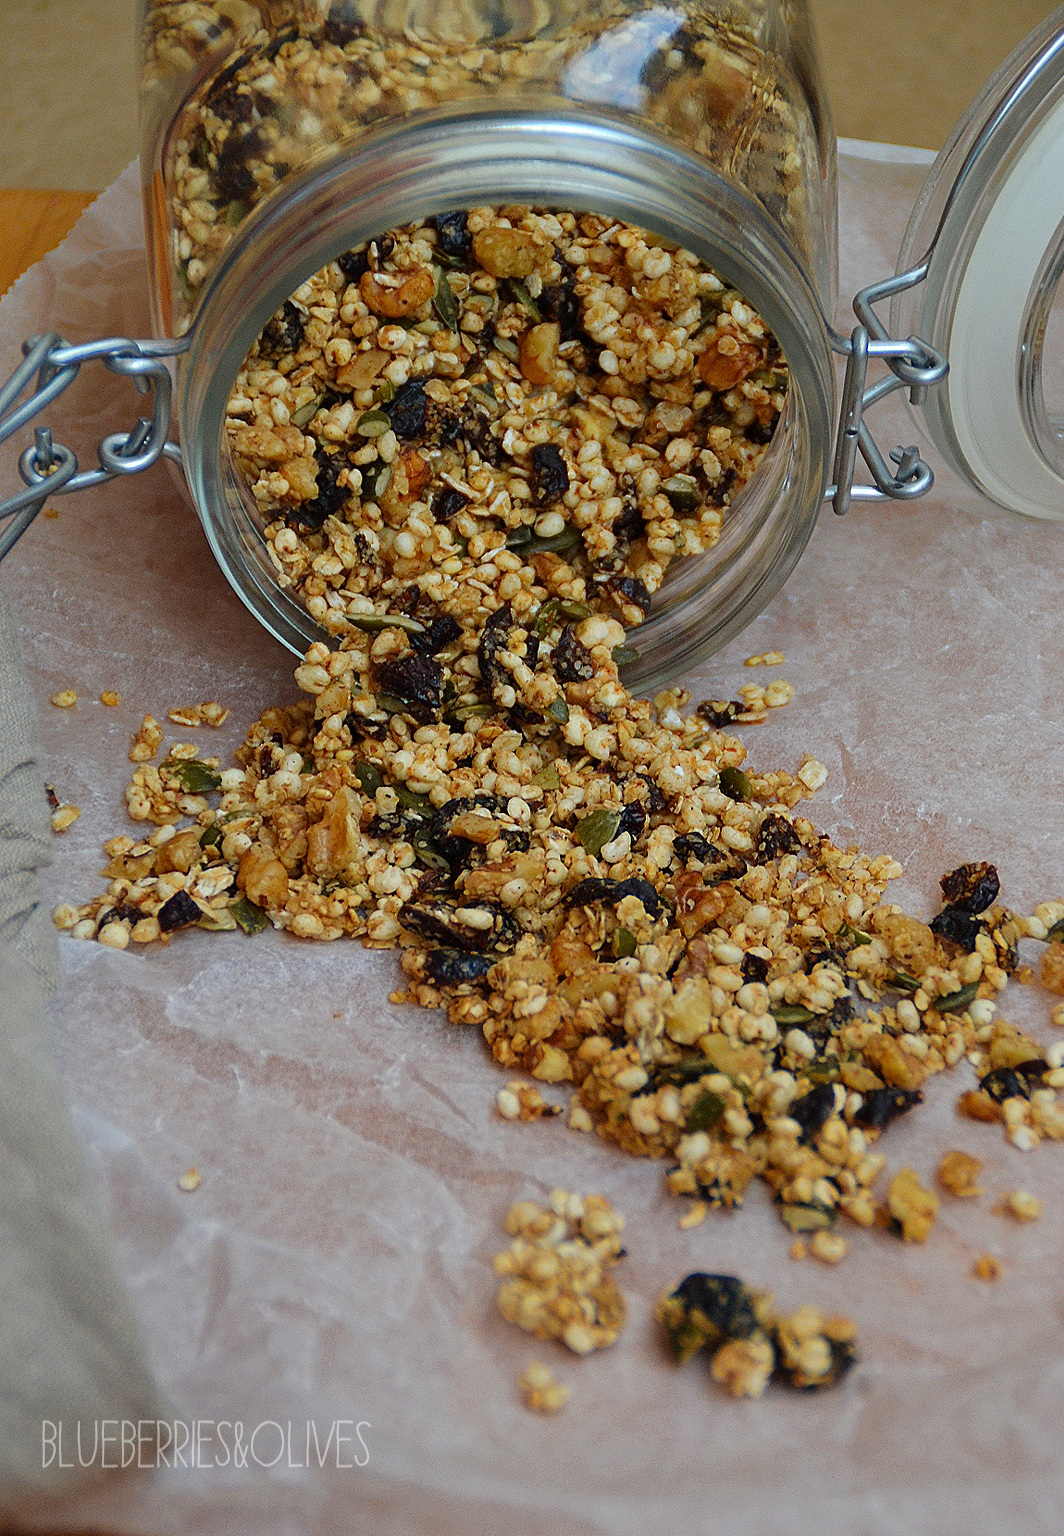 HOMEMADE MUESLI WITH CRANBERRIES, WALNUTS AND MAPLE SYRUP